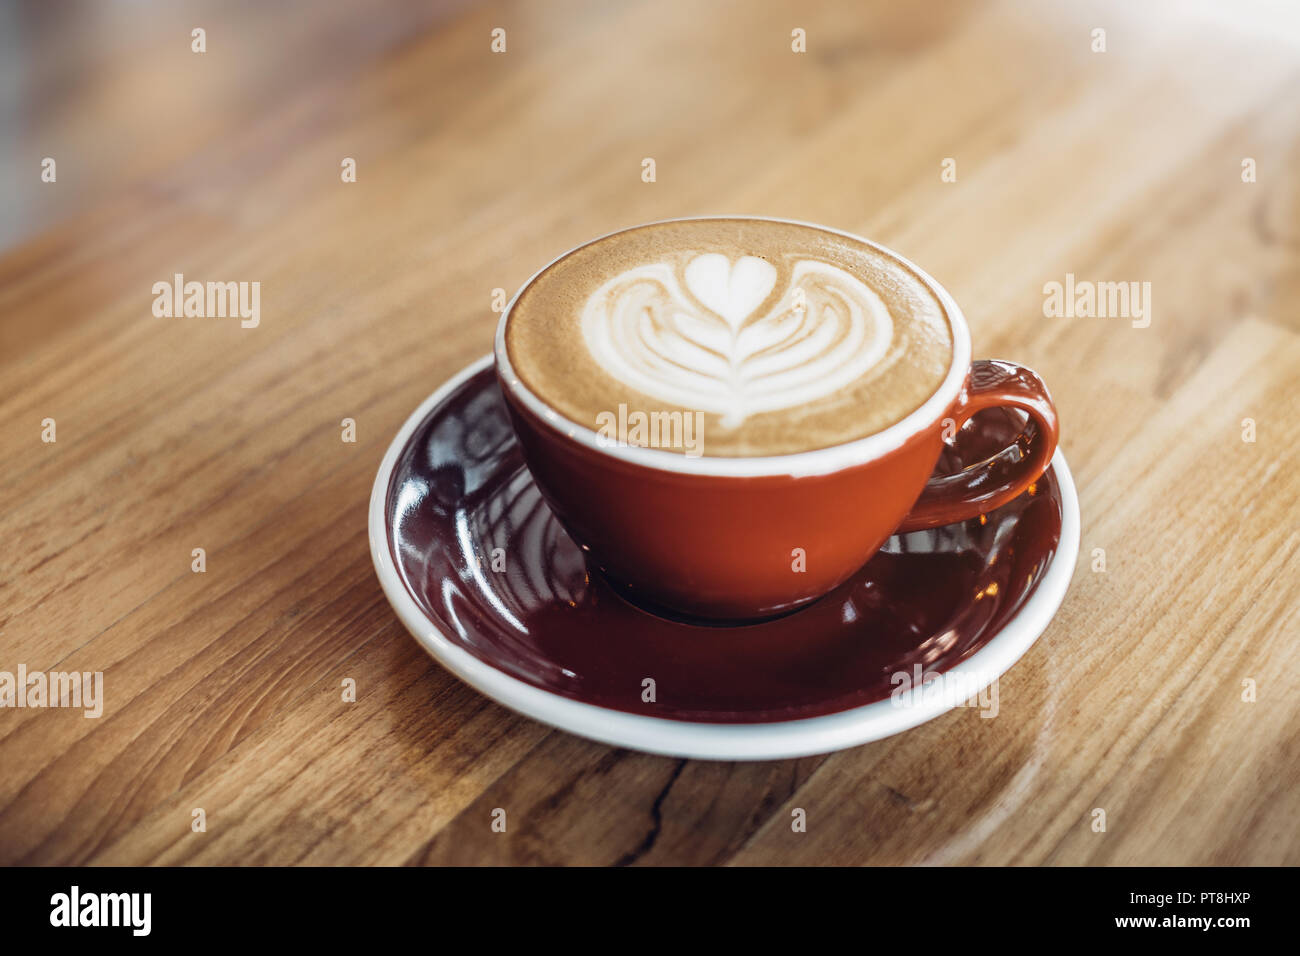 Close up hot cappuccino red coffee cup with heart shape latte art on wood table at cafe,Drak tone filter,food and drink Stock Photo